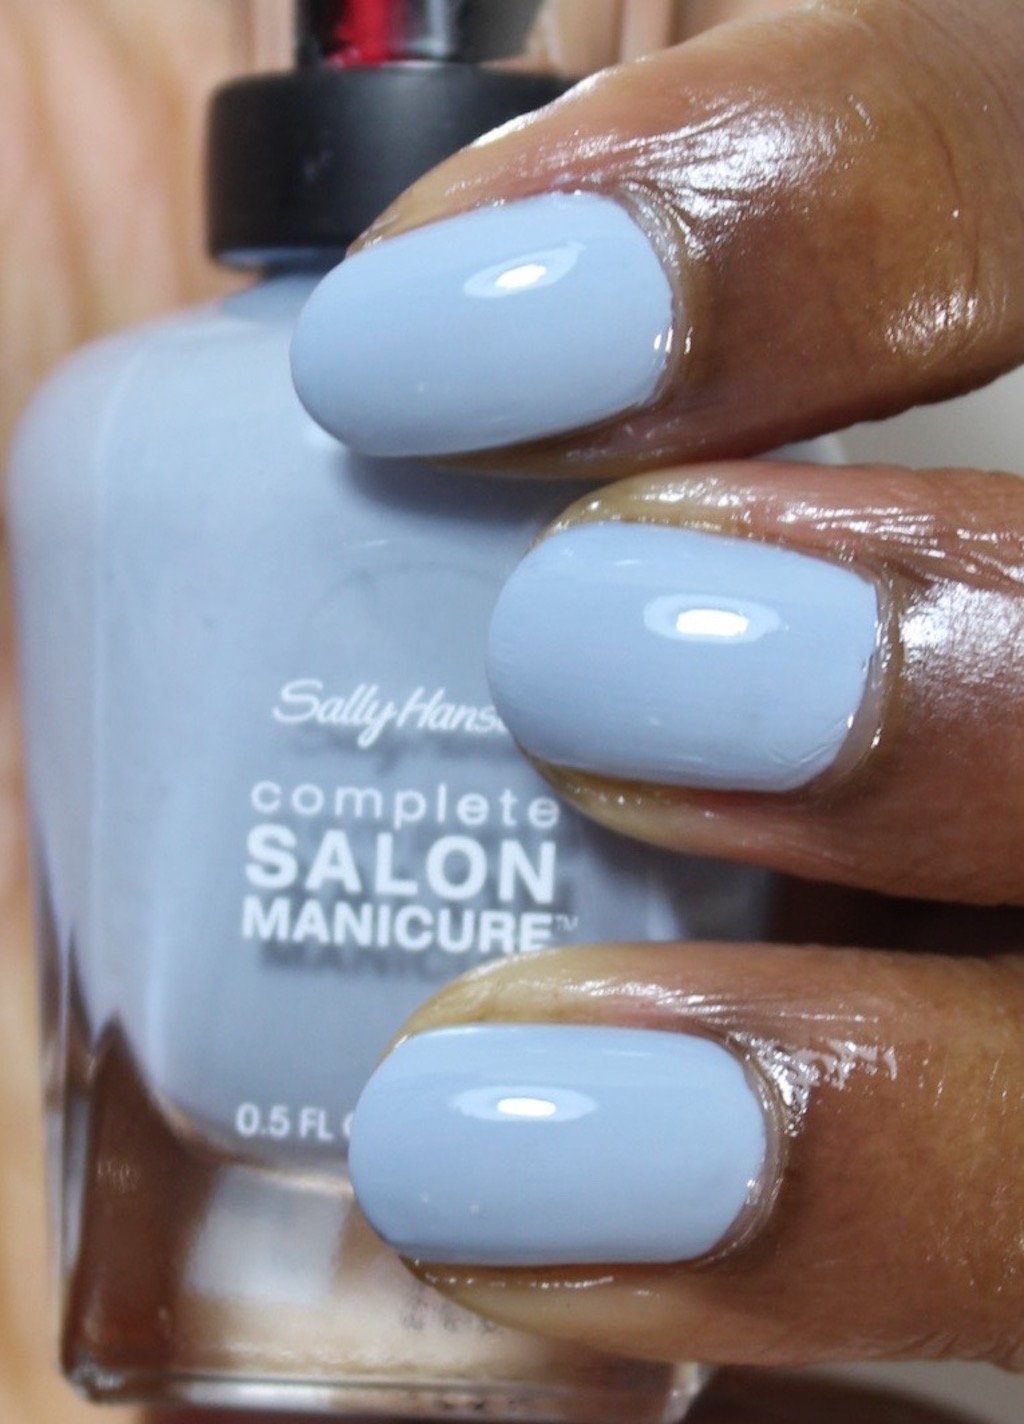 Sally Hansen Complet Salon Manicure In Full Blue-M